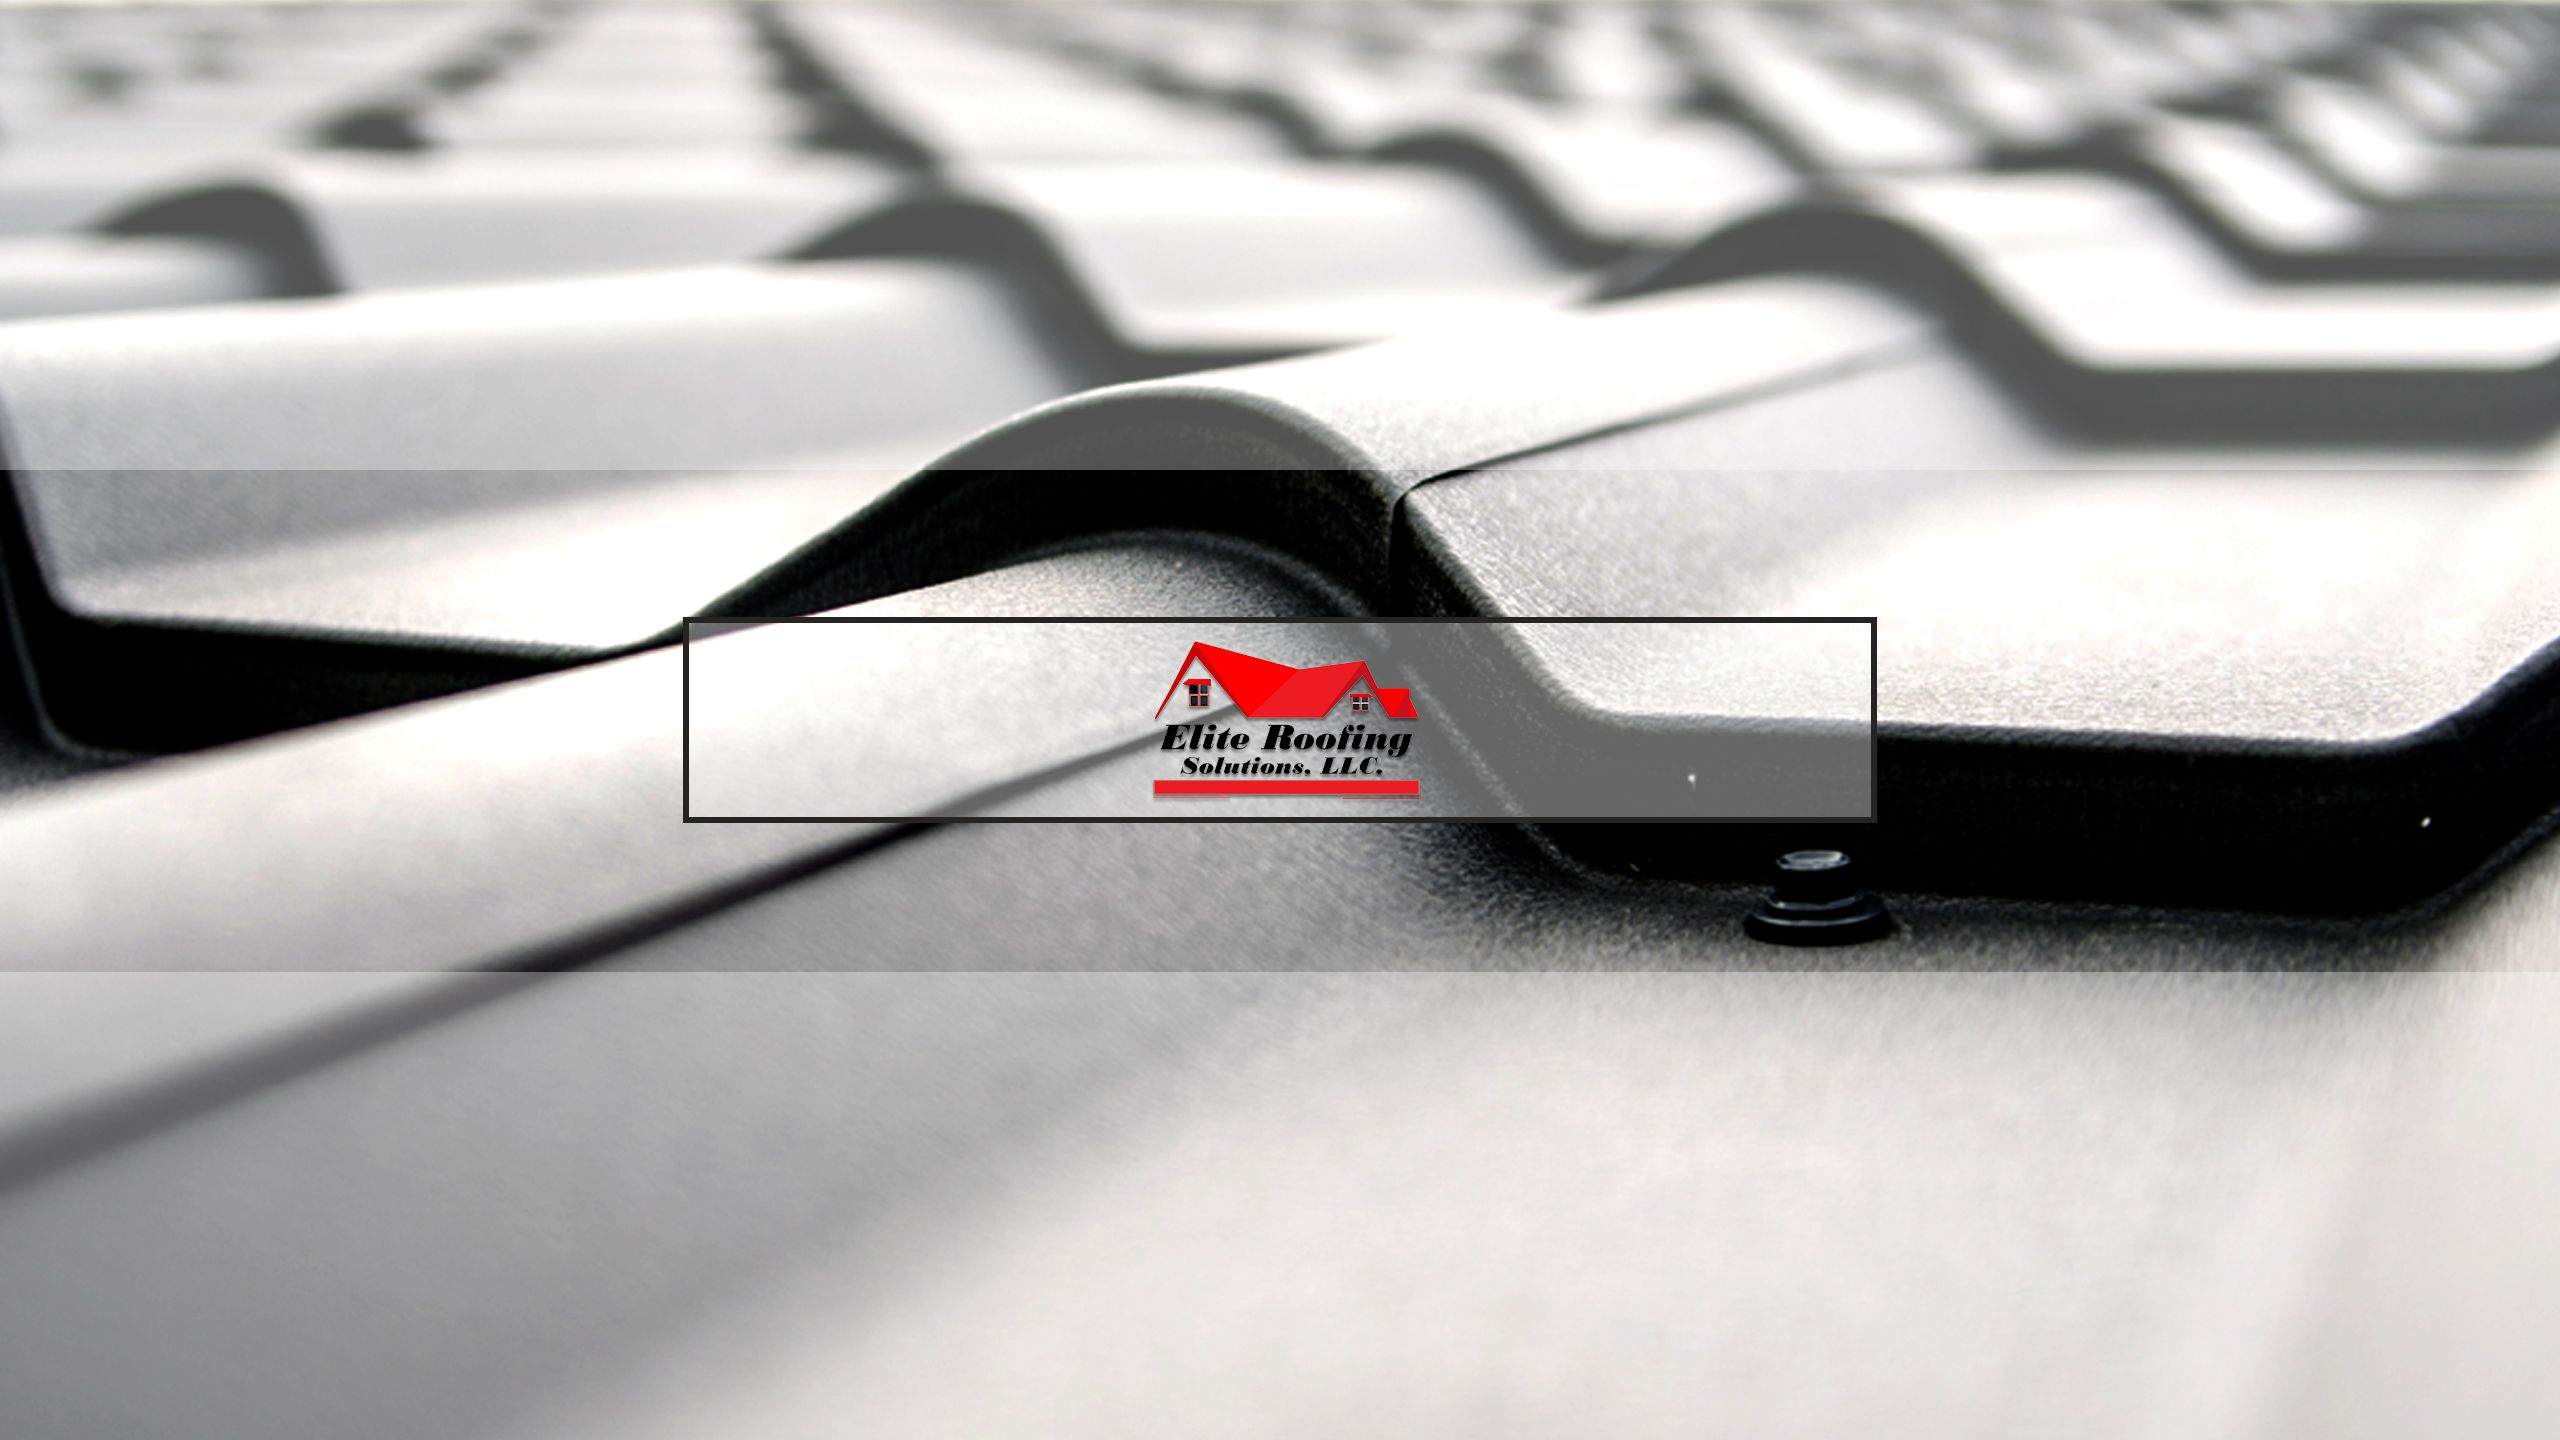 Elite Roofing Solutions Llc Is A Roofing Company In Fords Nj We Offer Roofing Installation Roof Repair Roof Replaceme Roof Repair Roofing Roofing Companies